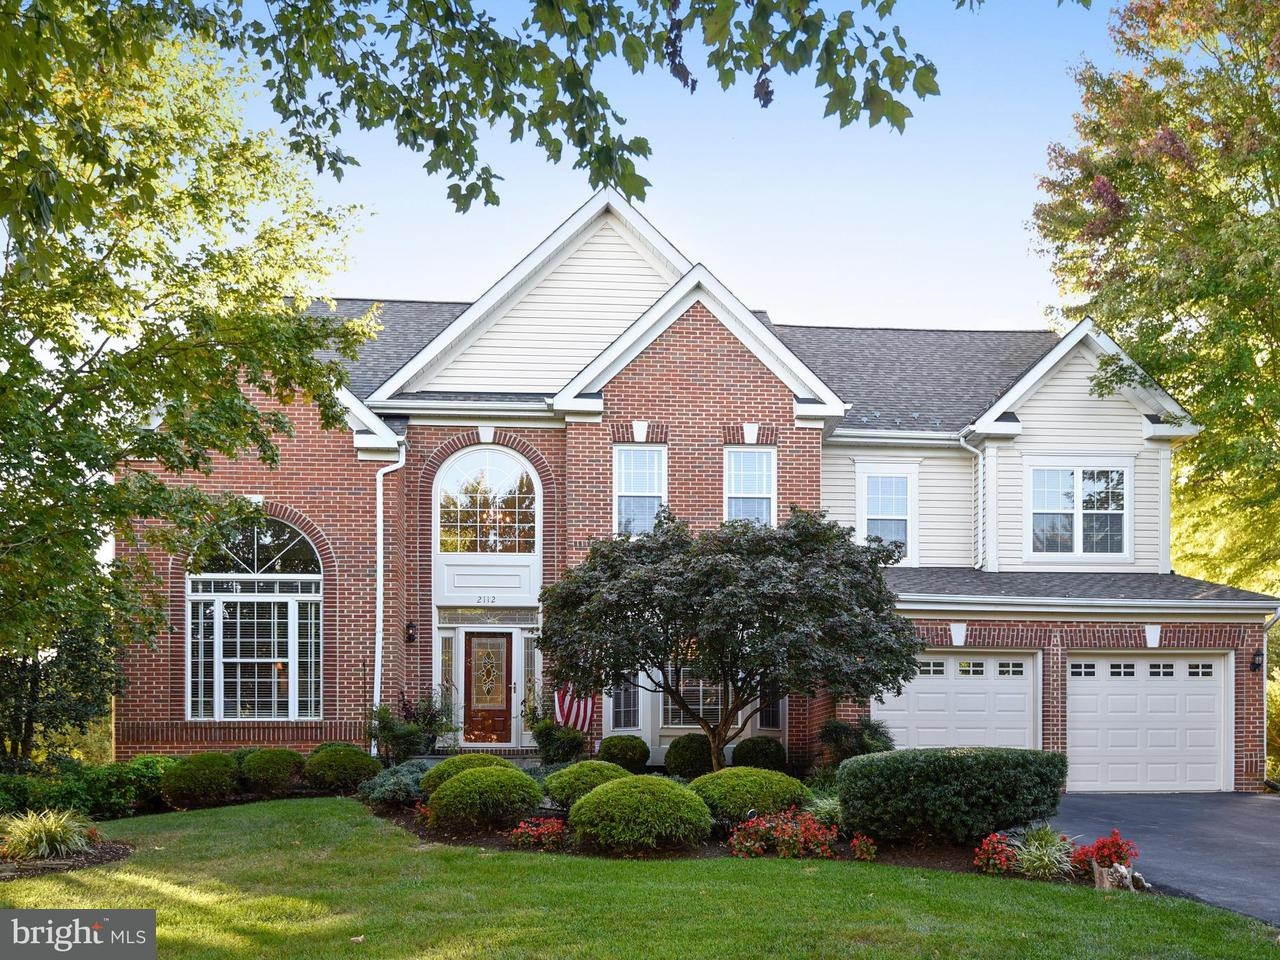 Single Family Home for Sale at 2112 CARTER MILL WAY 2112 CARTER MILL WAY Brookeville, Maryland 20833 United States